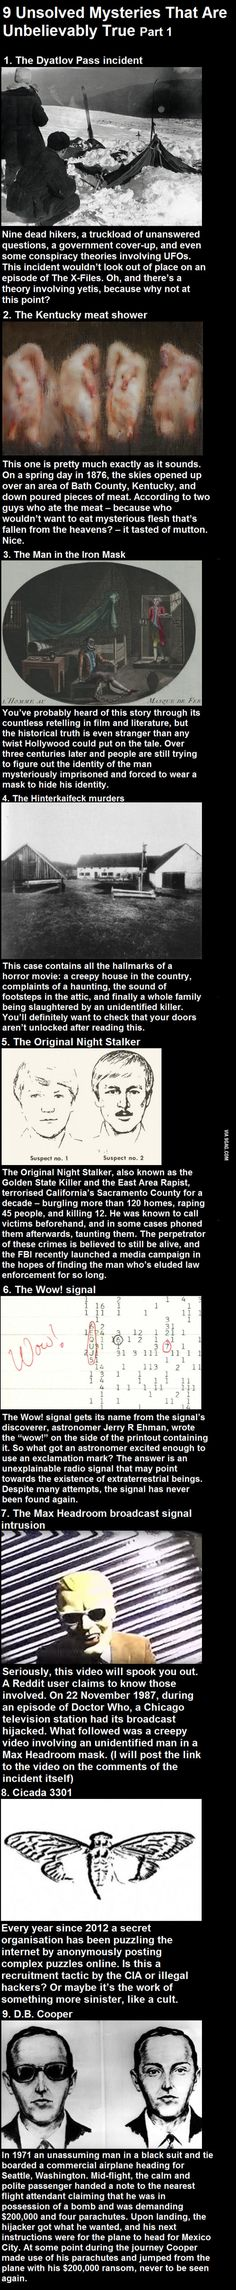 9 Unsolved Mysteries That Are Unbelievably True - 9GAG